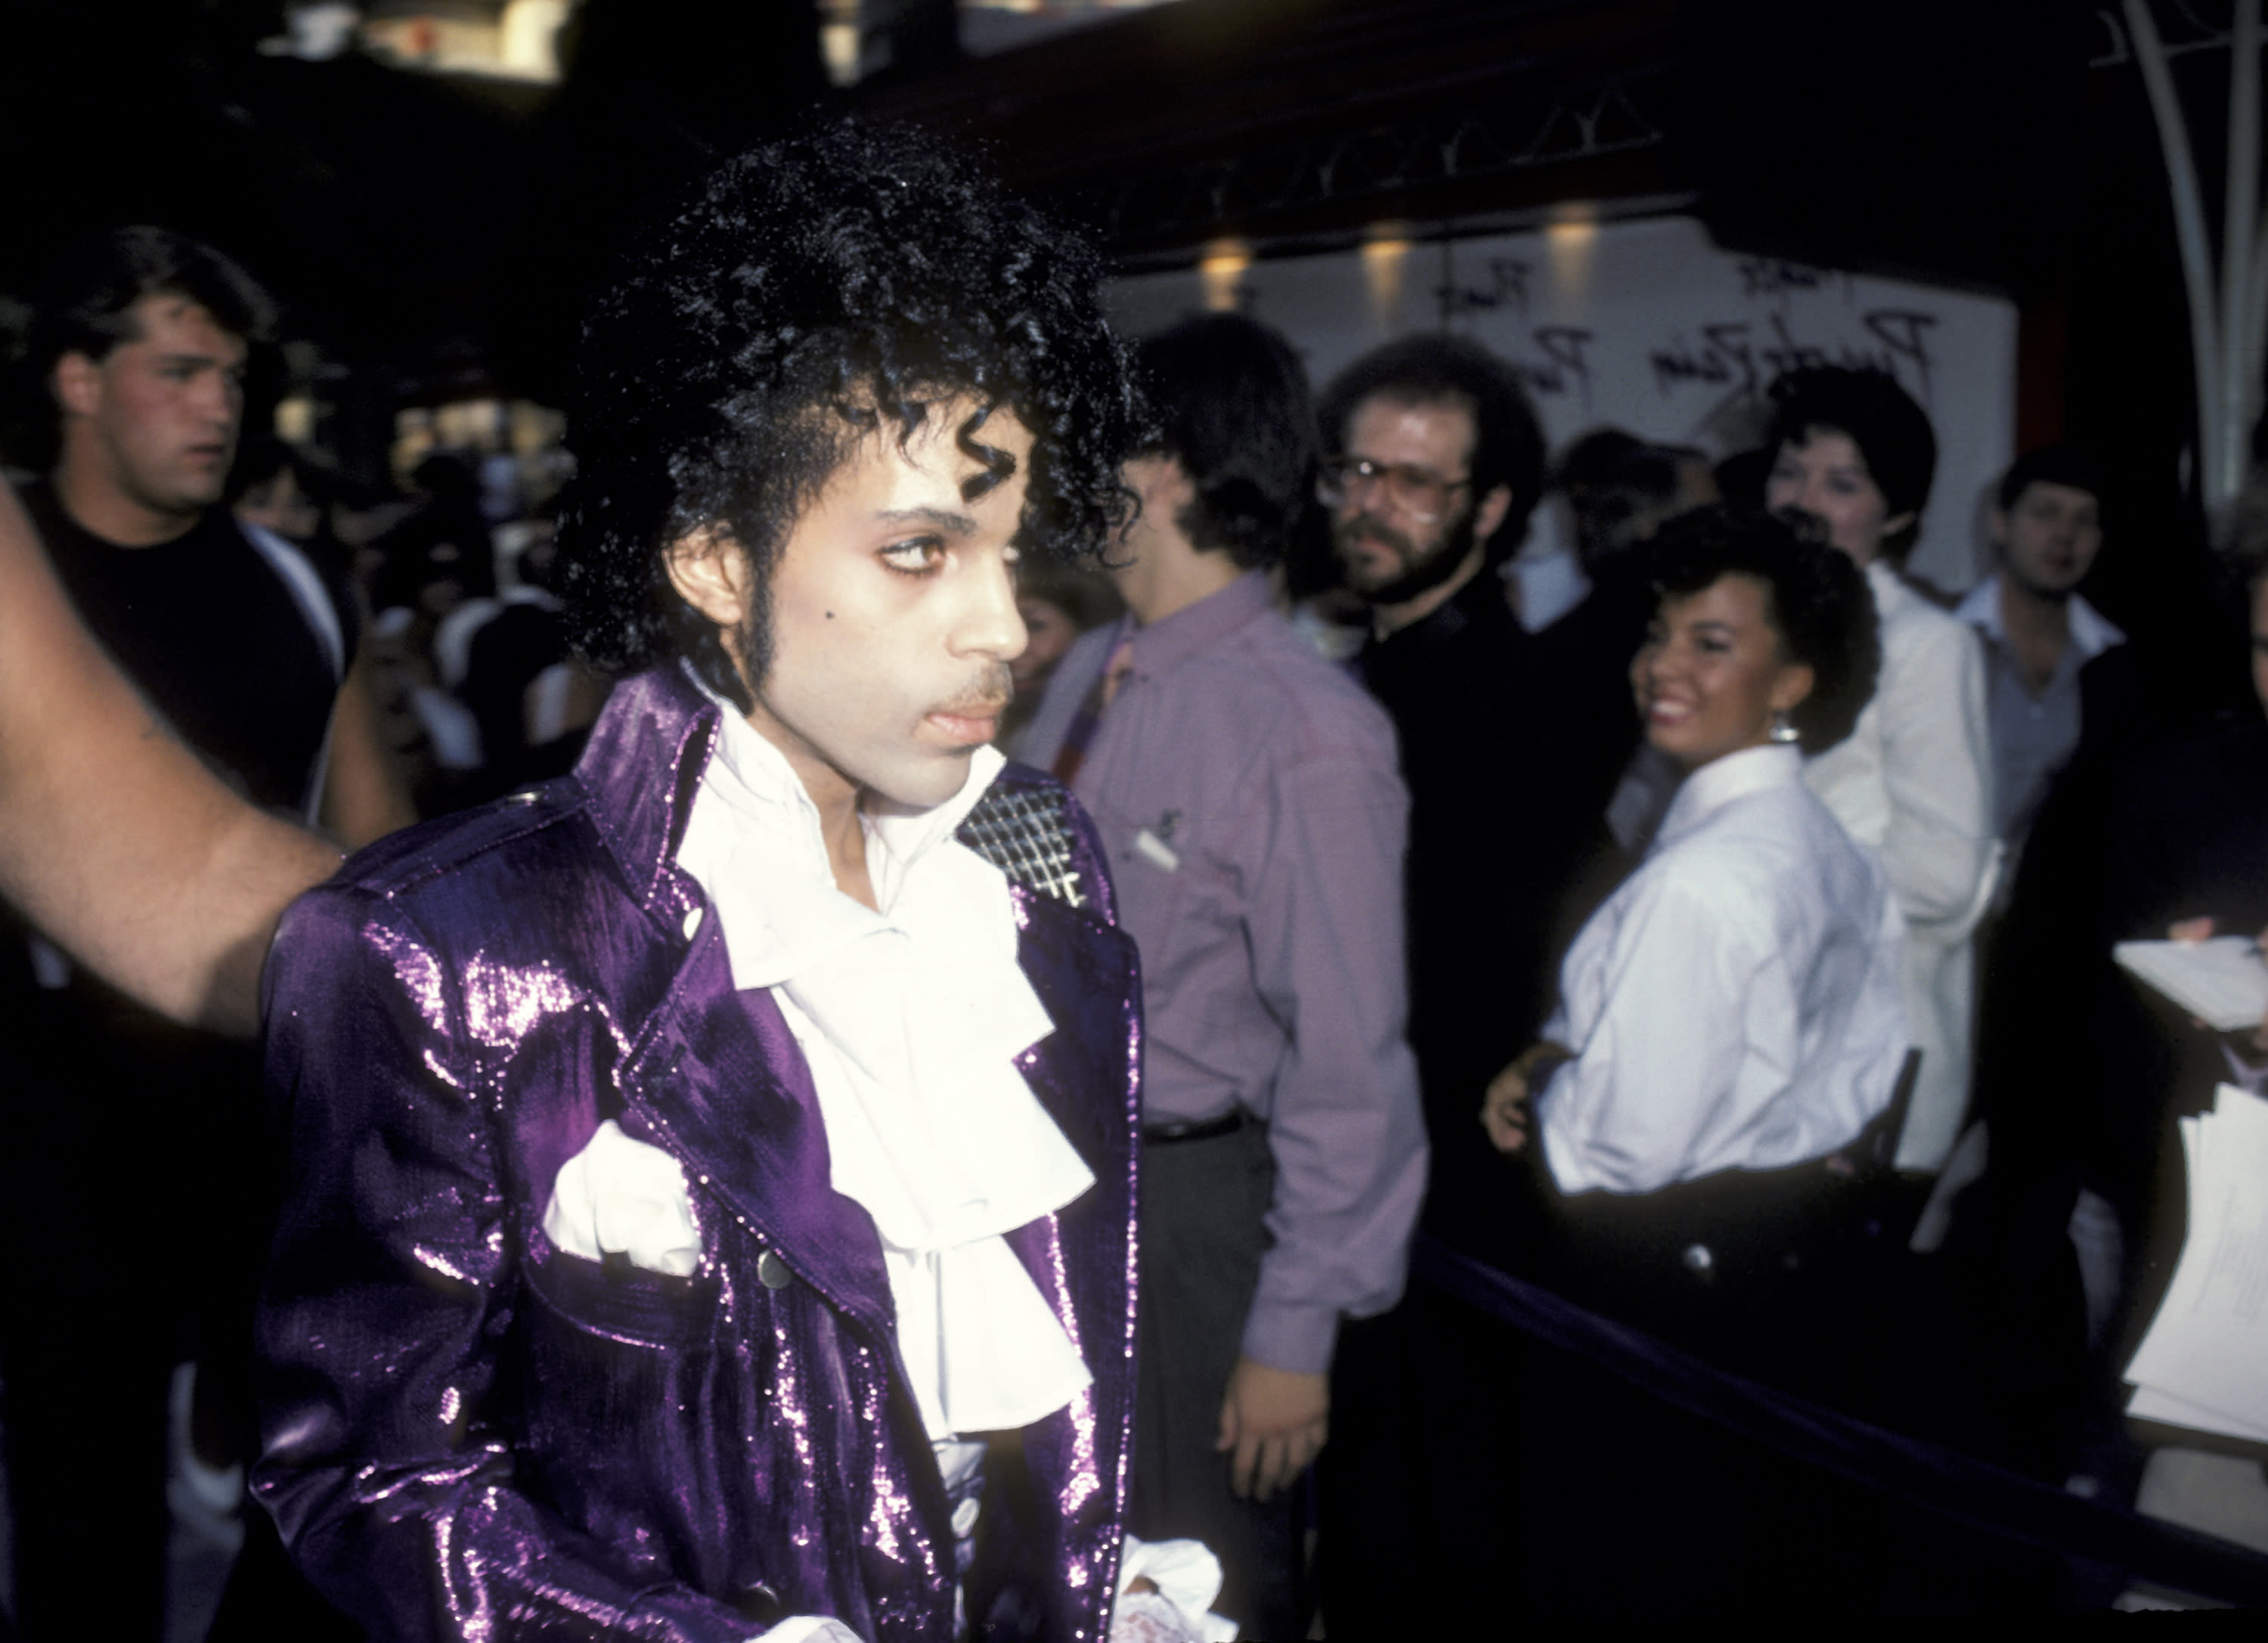 Prince attend the 1984 premiere of 'Purple Rain' at Mann Chinese Theater in Hollywood, Califo. (Photo: Ron Galella, Ltd./Ron Galella Collection via Getty Images)